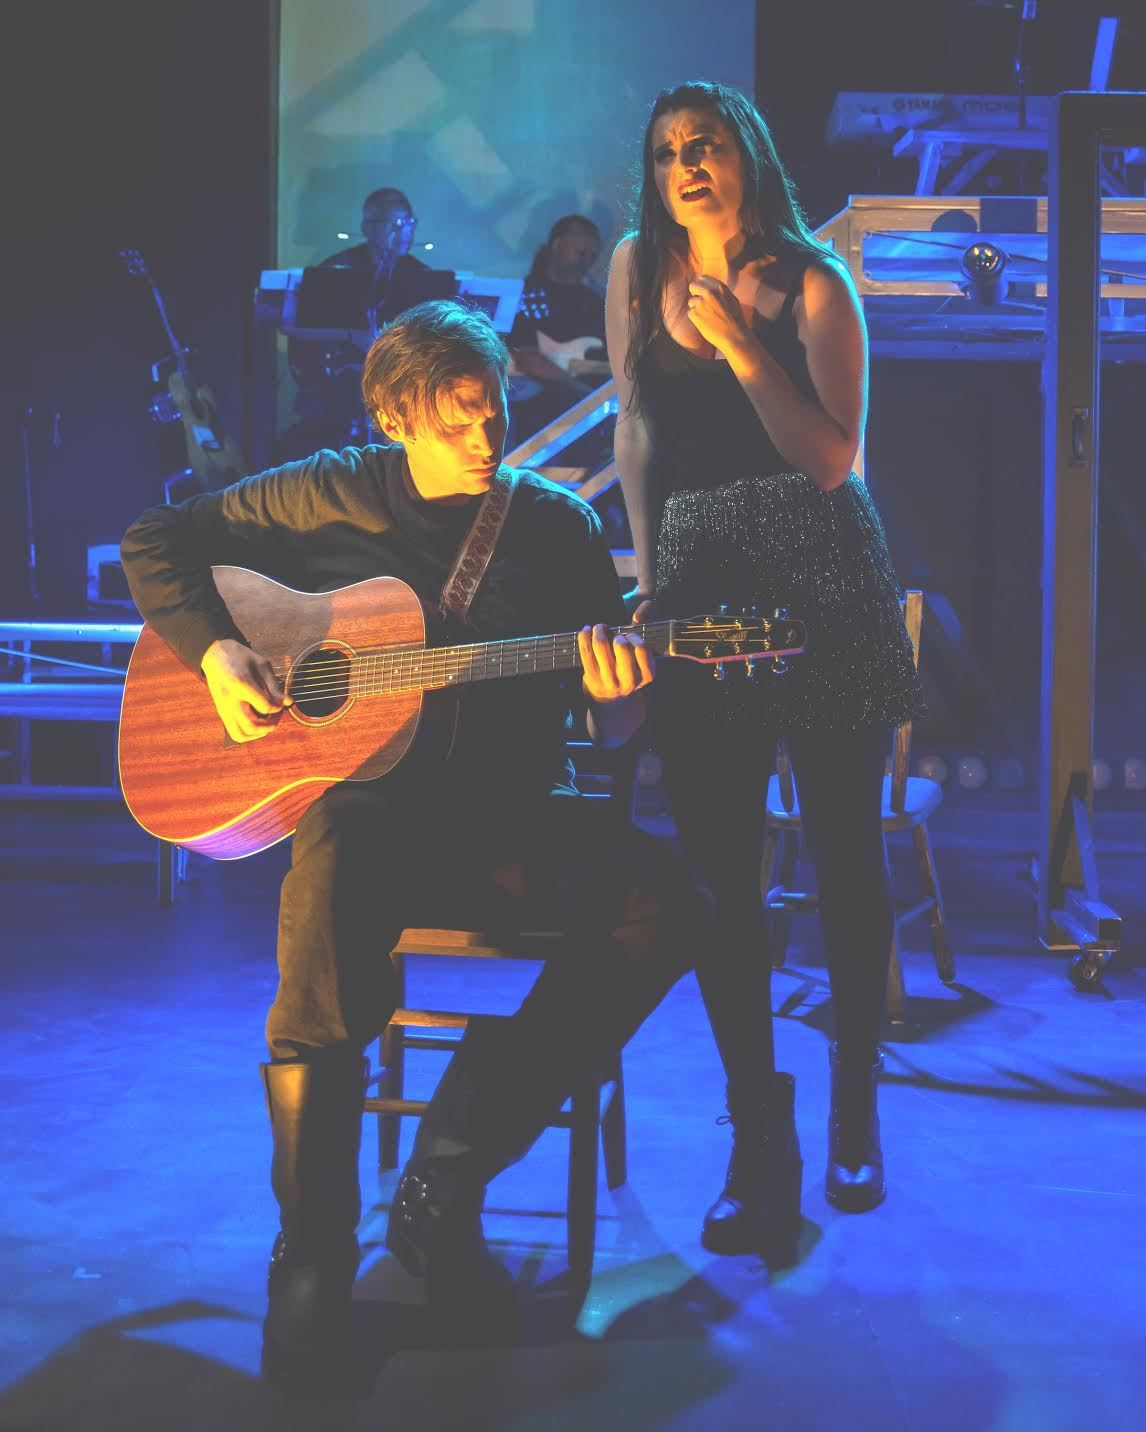 BWW Review: ROOMS: A ROCK ROMANCE Returns to MetroStage with Energy and Enthusiasm